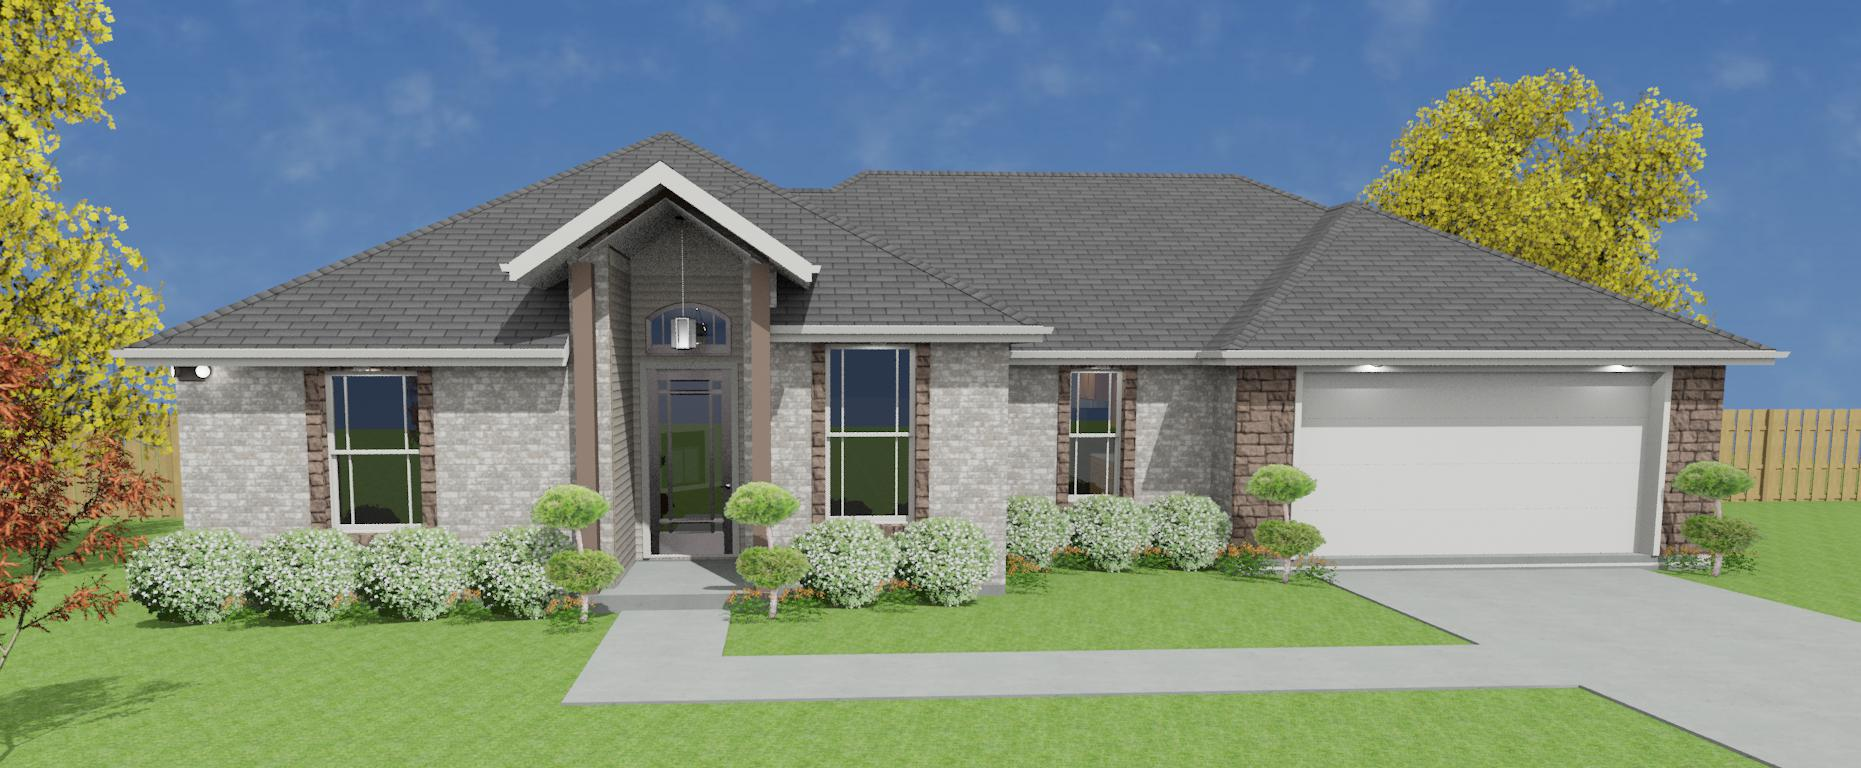 1787ft² with Ashland Brick (Gray)